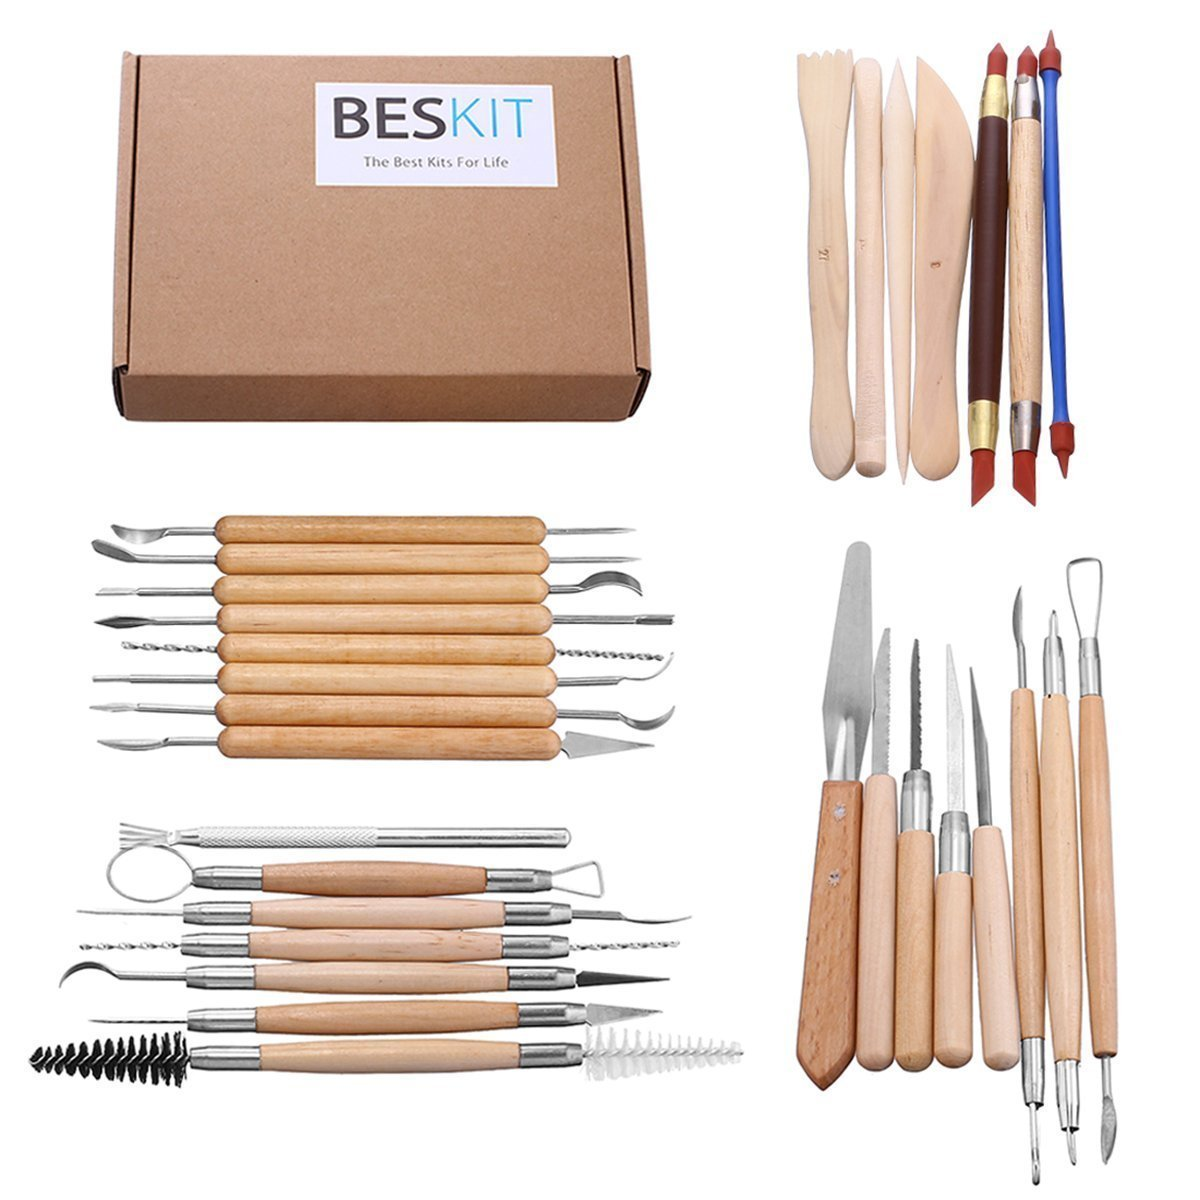 BESKIT 30PCS Clay Sculpting Tools Pottery Carving Tool Set Halloween Sculpting Kit - Includes Clay Color Shapers, Modeling Tools & Wooden Sculpture Knife & Pumpkin Carving Tools (Type 1)